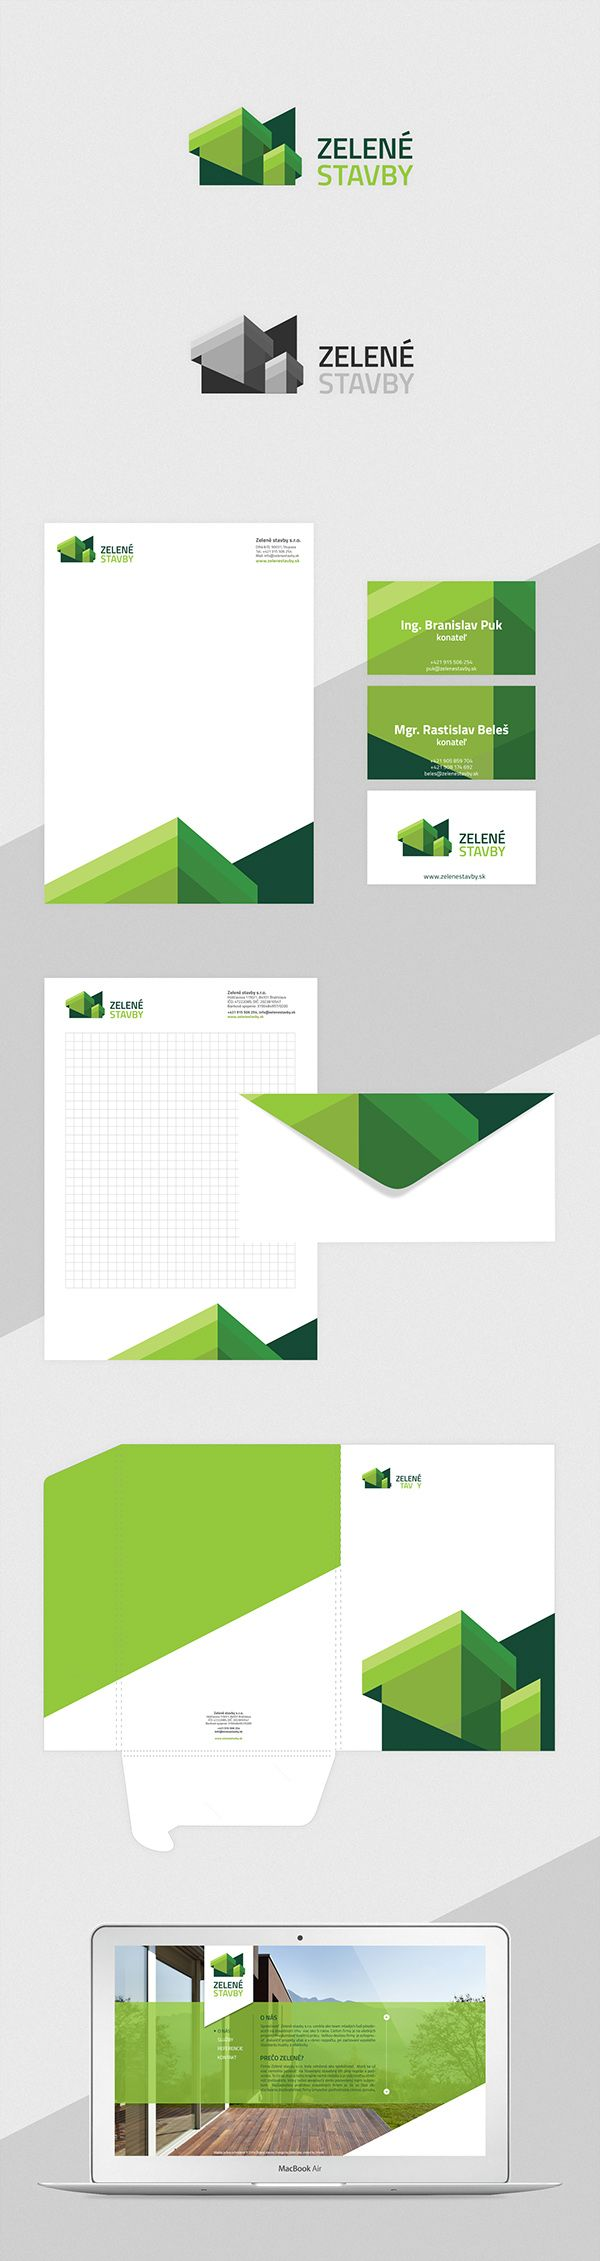 Corporate Identity for Building Construction Company on Behance ...